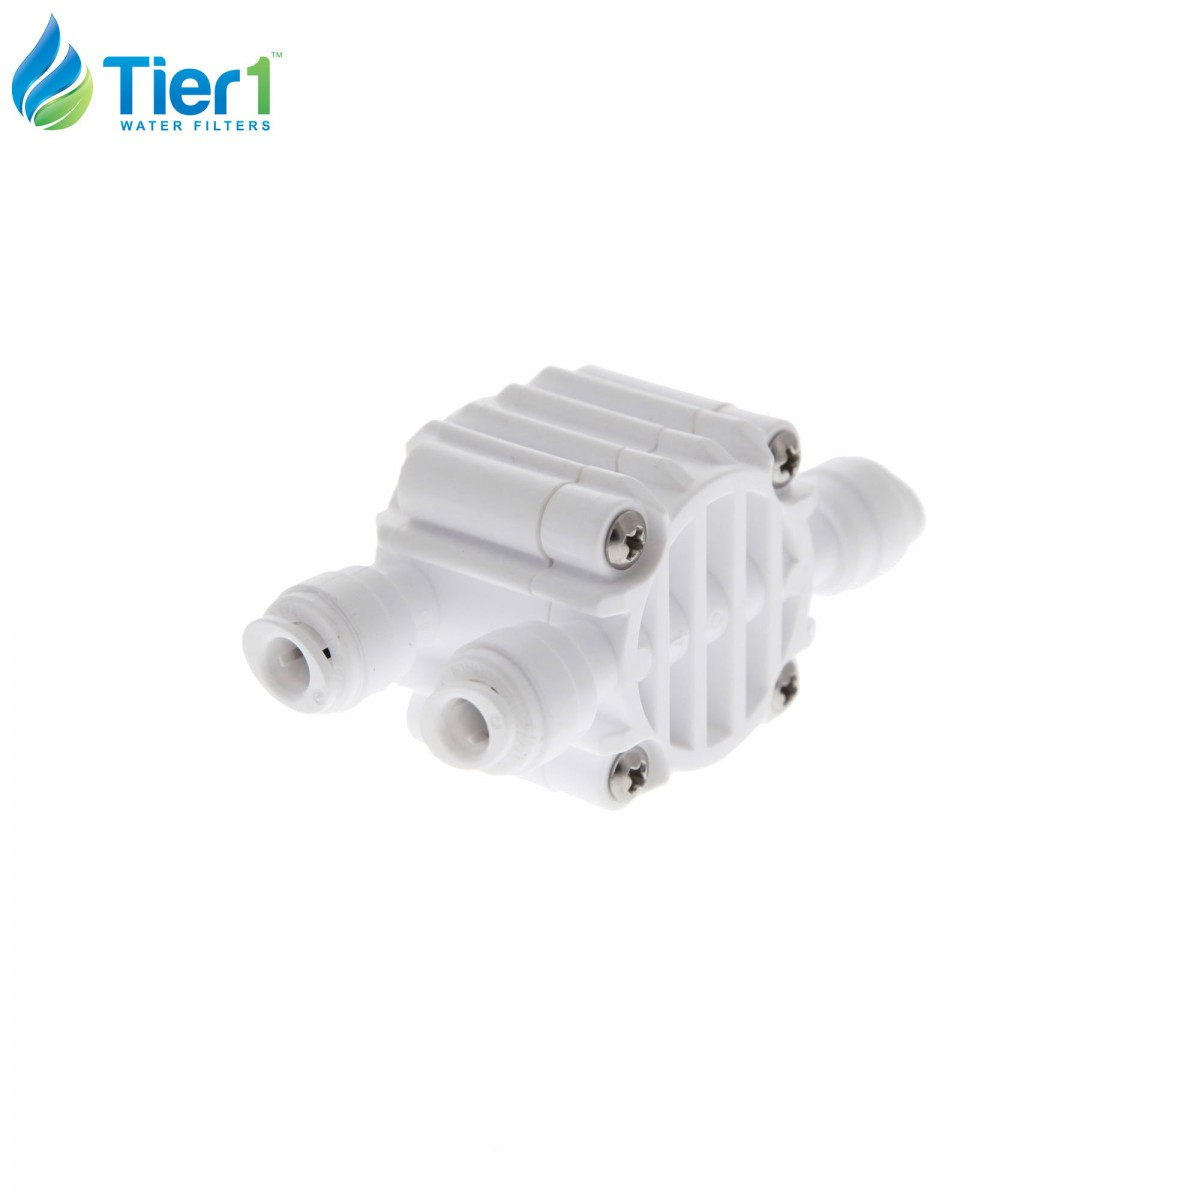 Automatic Shut Off Valve ASOV 14QW (1/4 Inch Quick Connect)